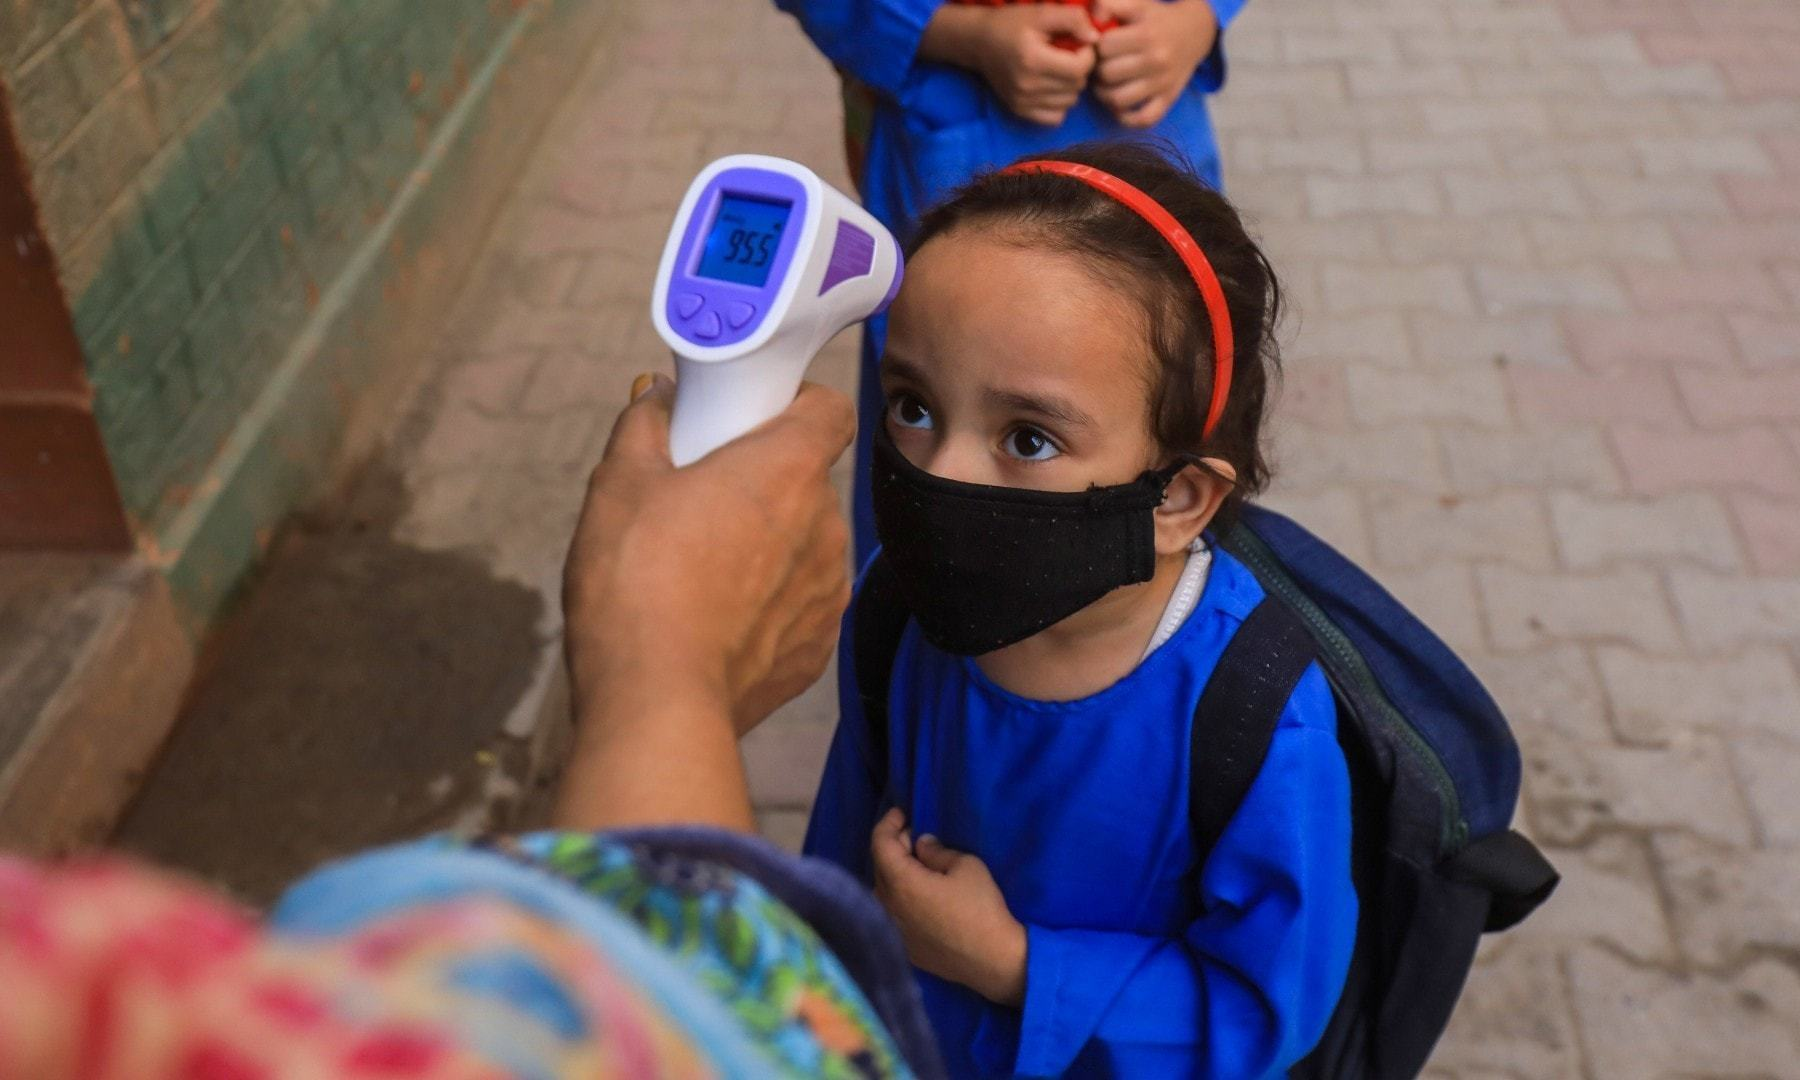 A student wears a protective mask as she gets her temperature checked before entering a class in Peshawar on September 30, 2020. — Reuters/File